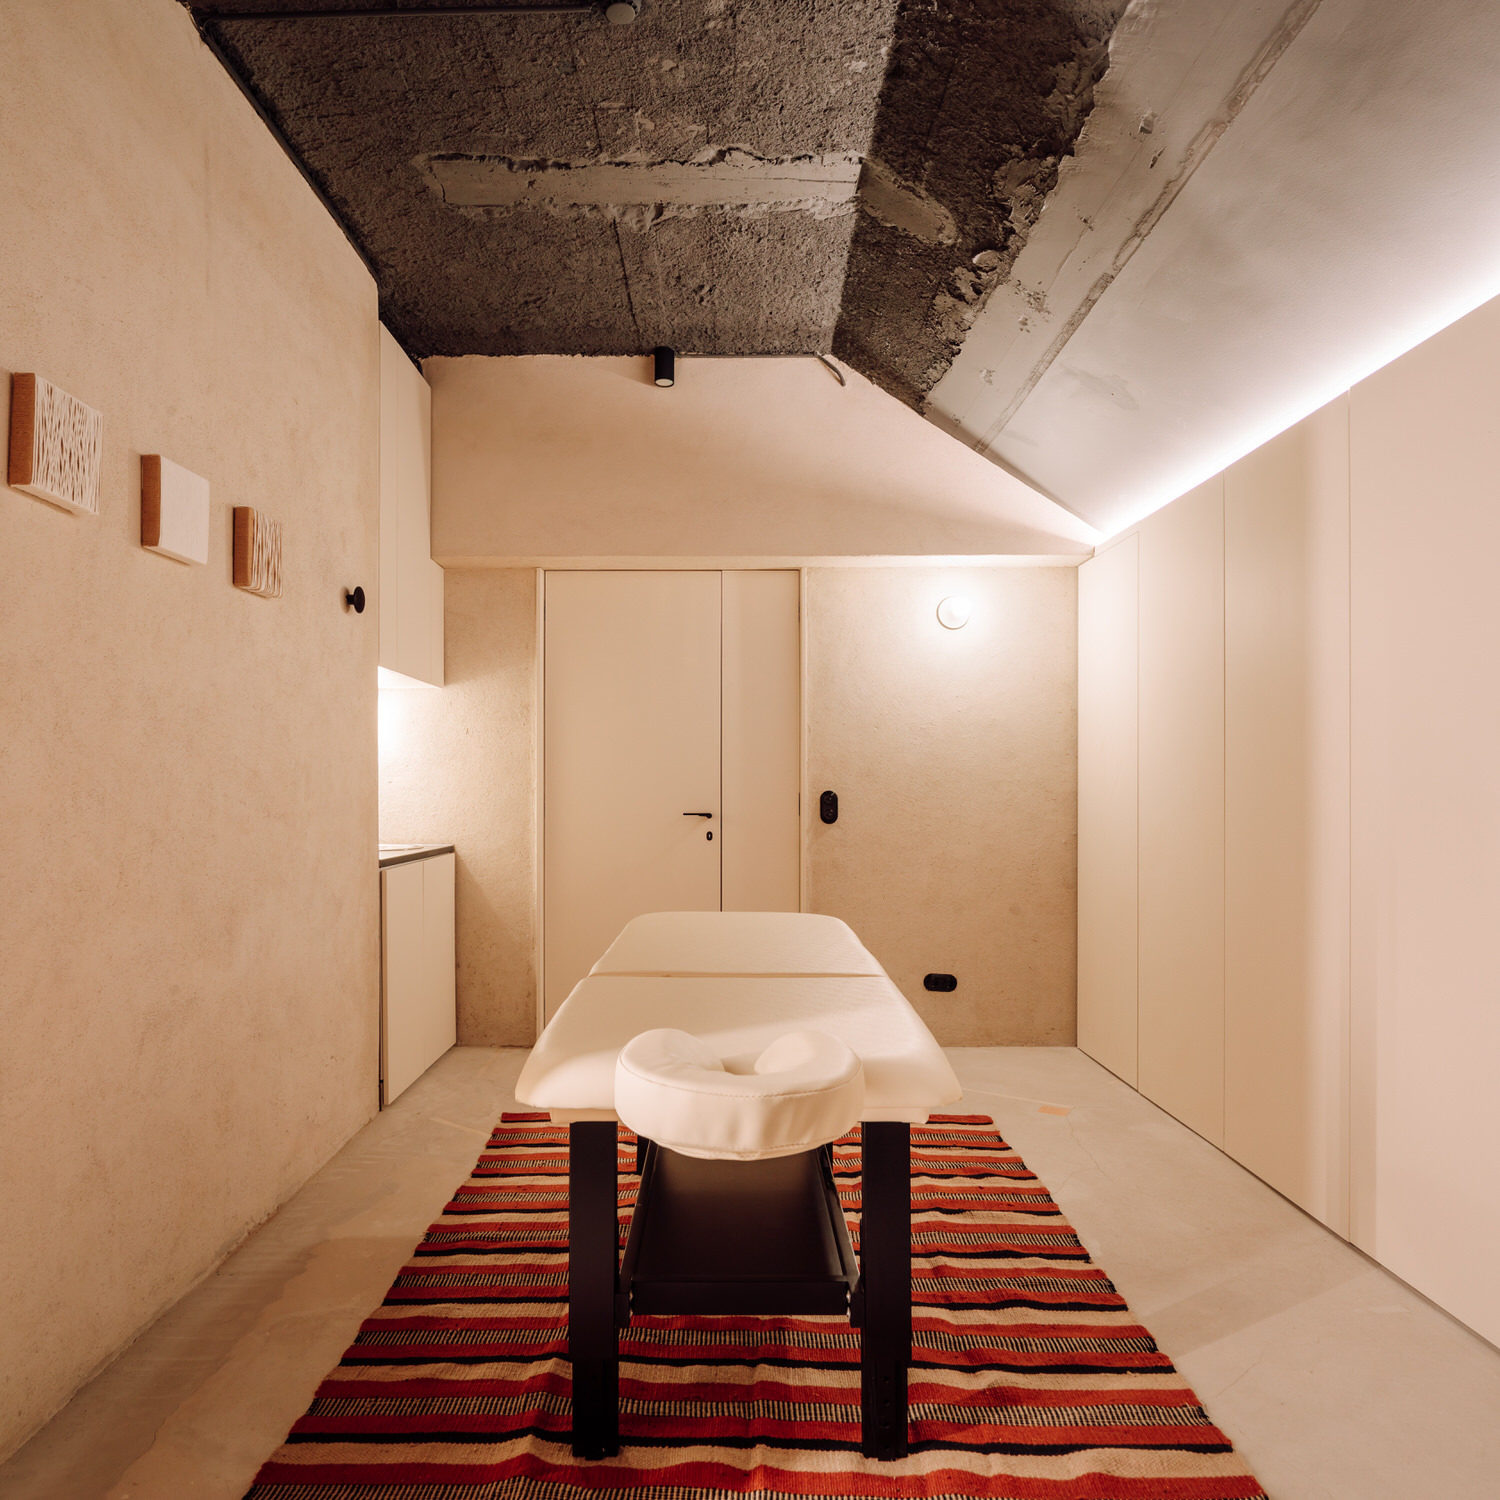 Studio Gameiro, Gladstone Members Wellness Club Lisbon, Photo Francisco Noguera | Yellowtrace